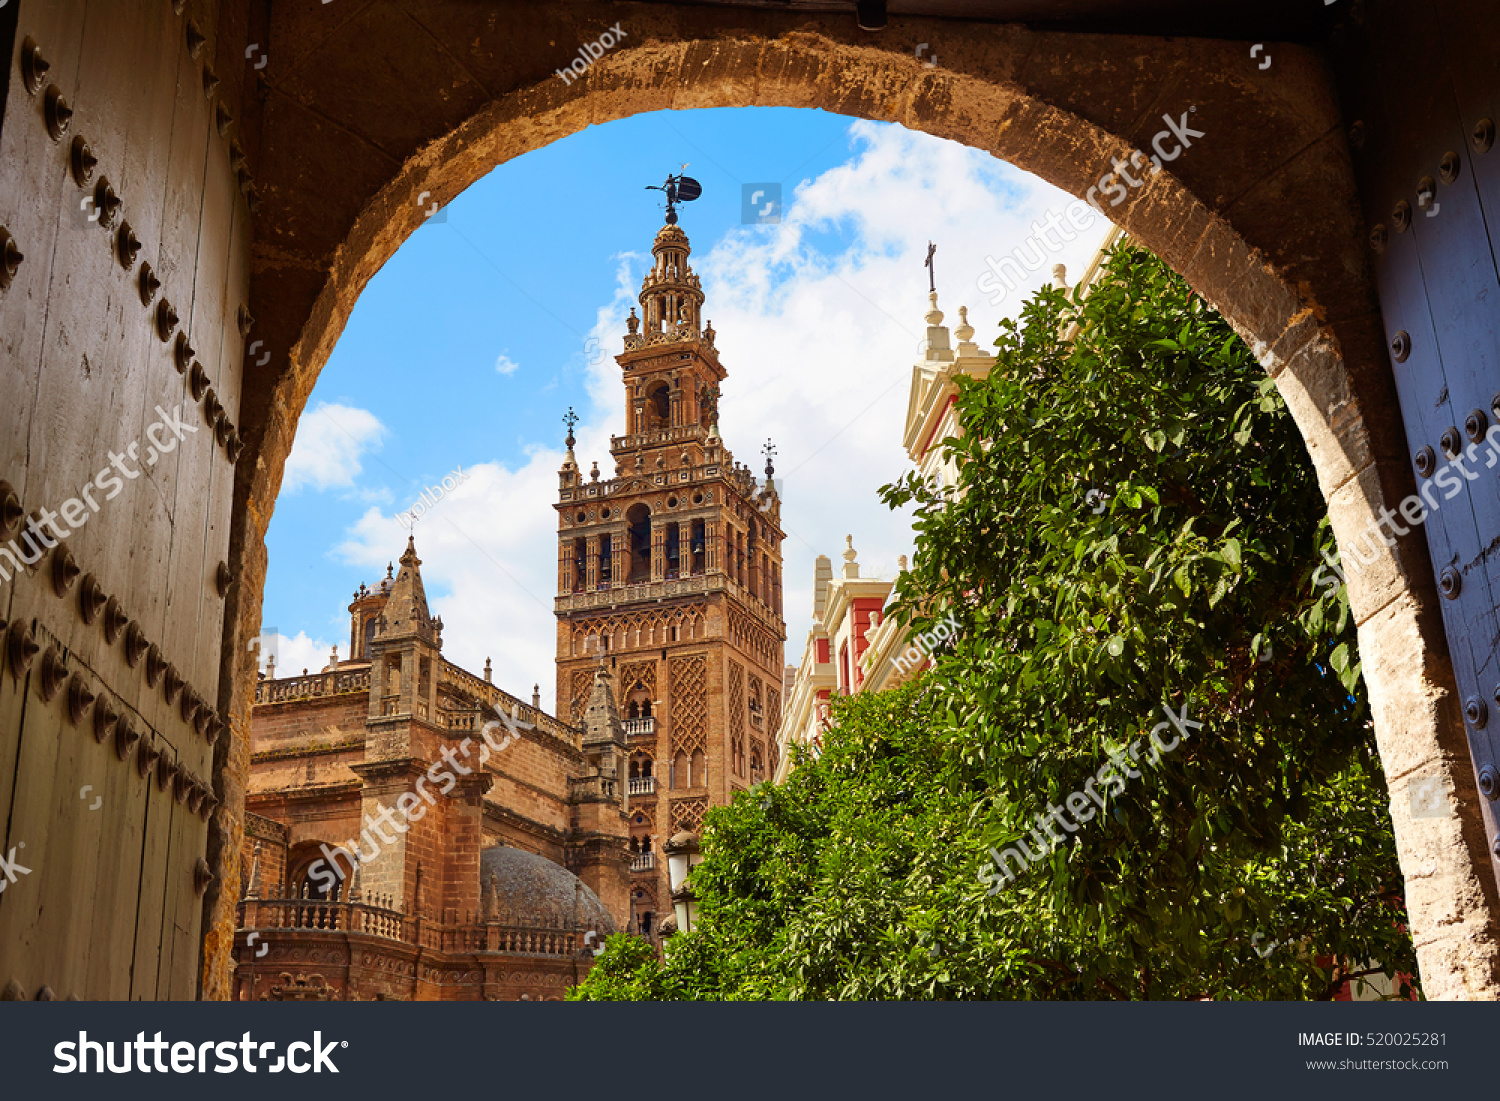 Seville Cathedral Giralda Tower Alcazar Arch Stock Photo 520025281 - Shutters...